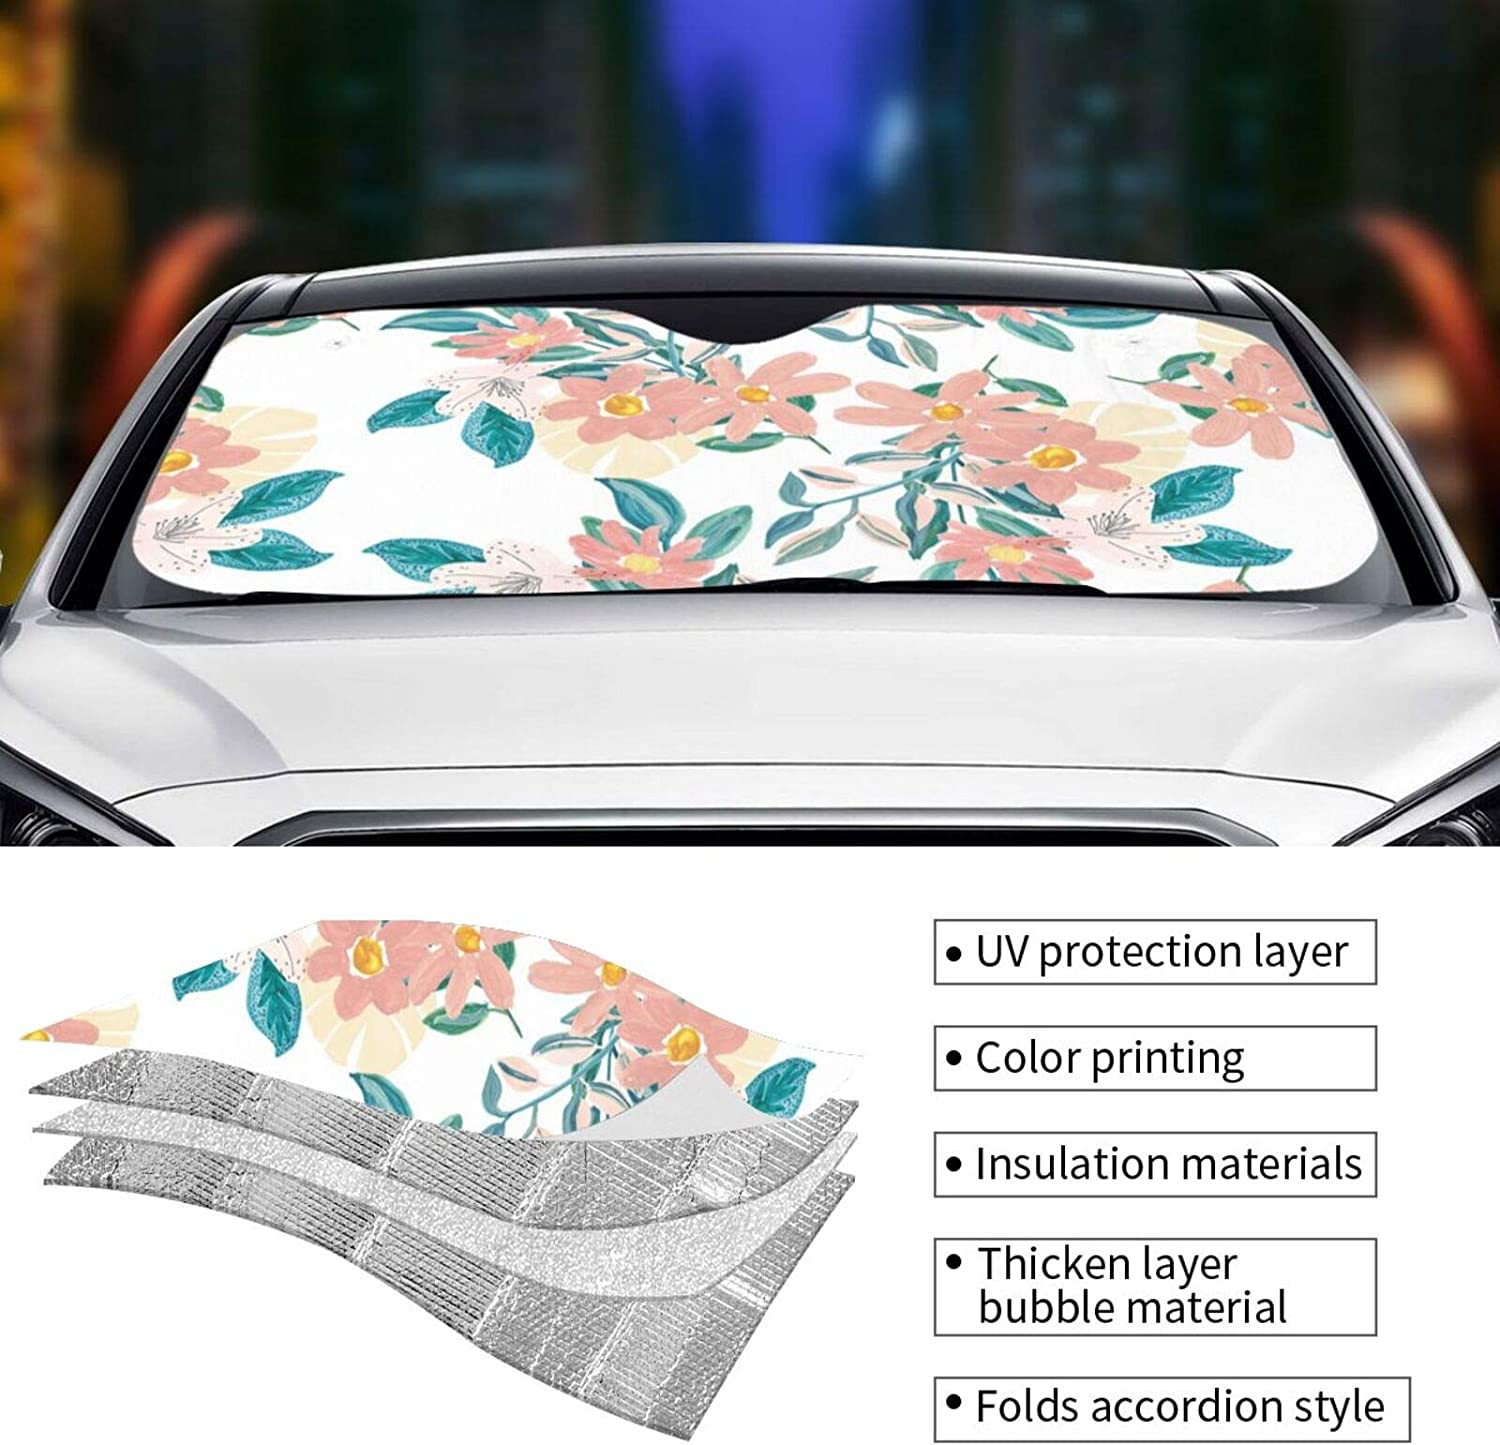 Lbuxinqu 6 Windshield Sun Visor, Used for Car SUV Truck (13070cm and 14076cm) Front Window Sunshade Sunshade: Sports & Outdoors